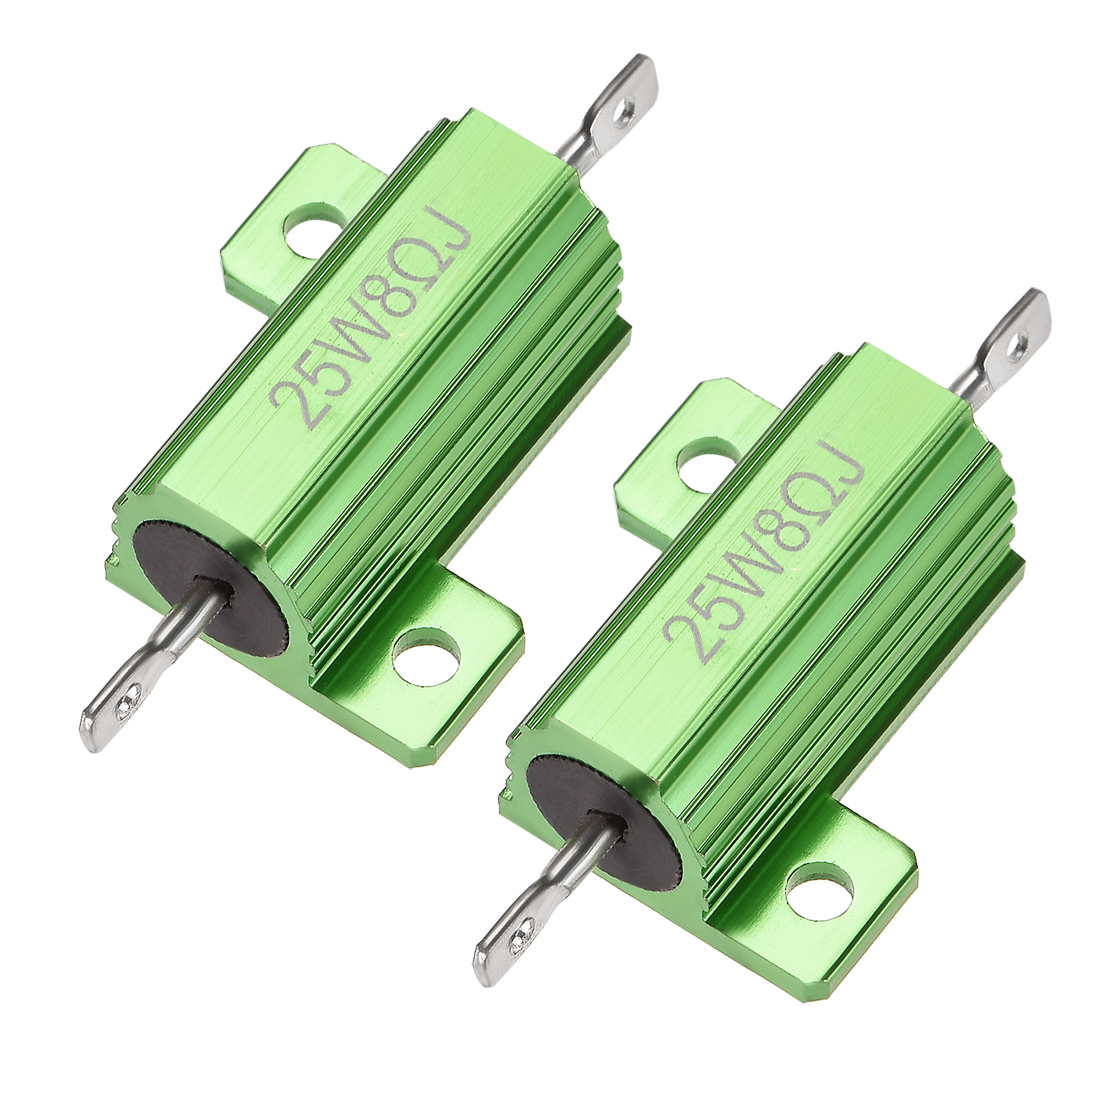 25W 8 Ohm 5% Aluminum Housing Resistor Wirewound Resistor Green Tone 2 Pcs